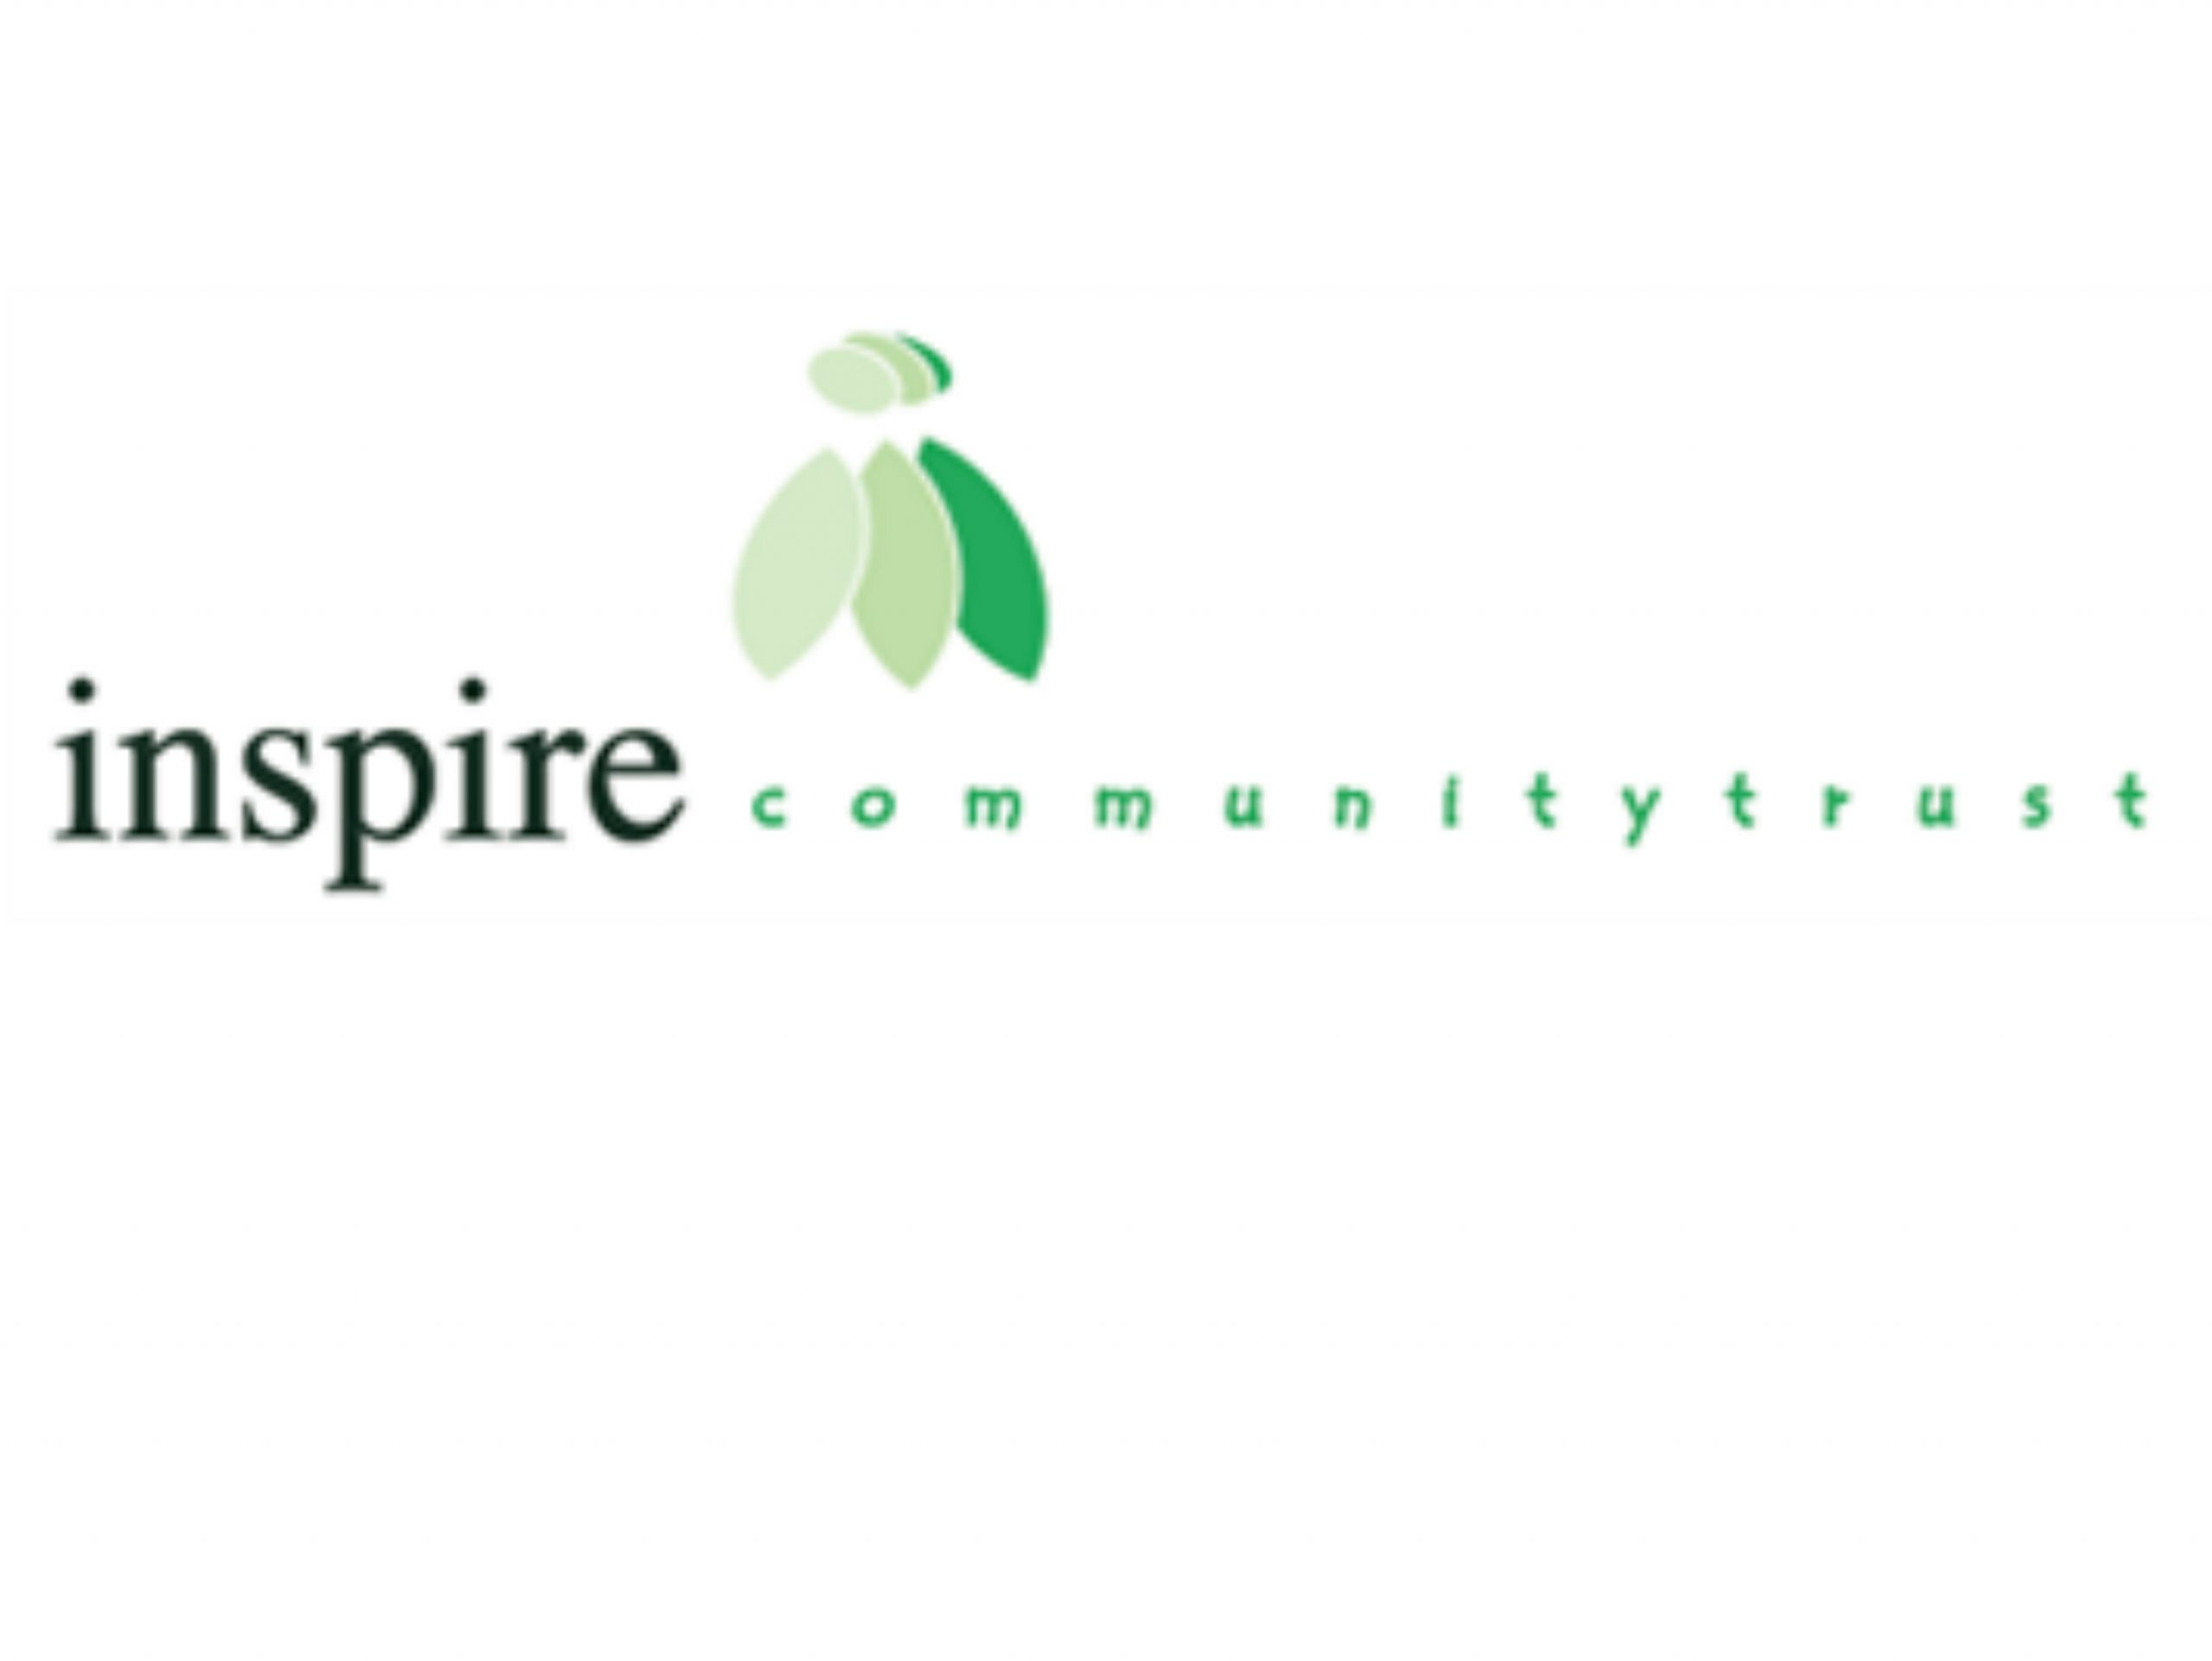 Inspire Community Trust Announces New Clinical Manager